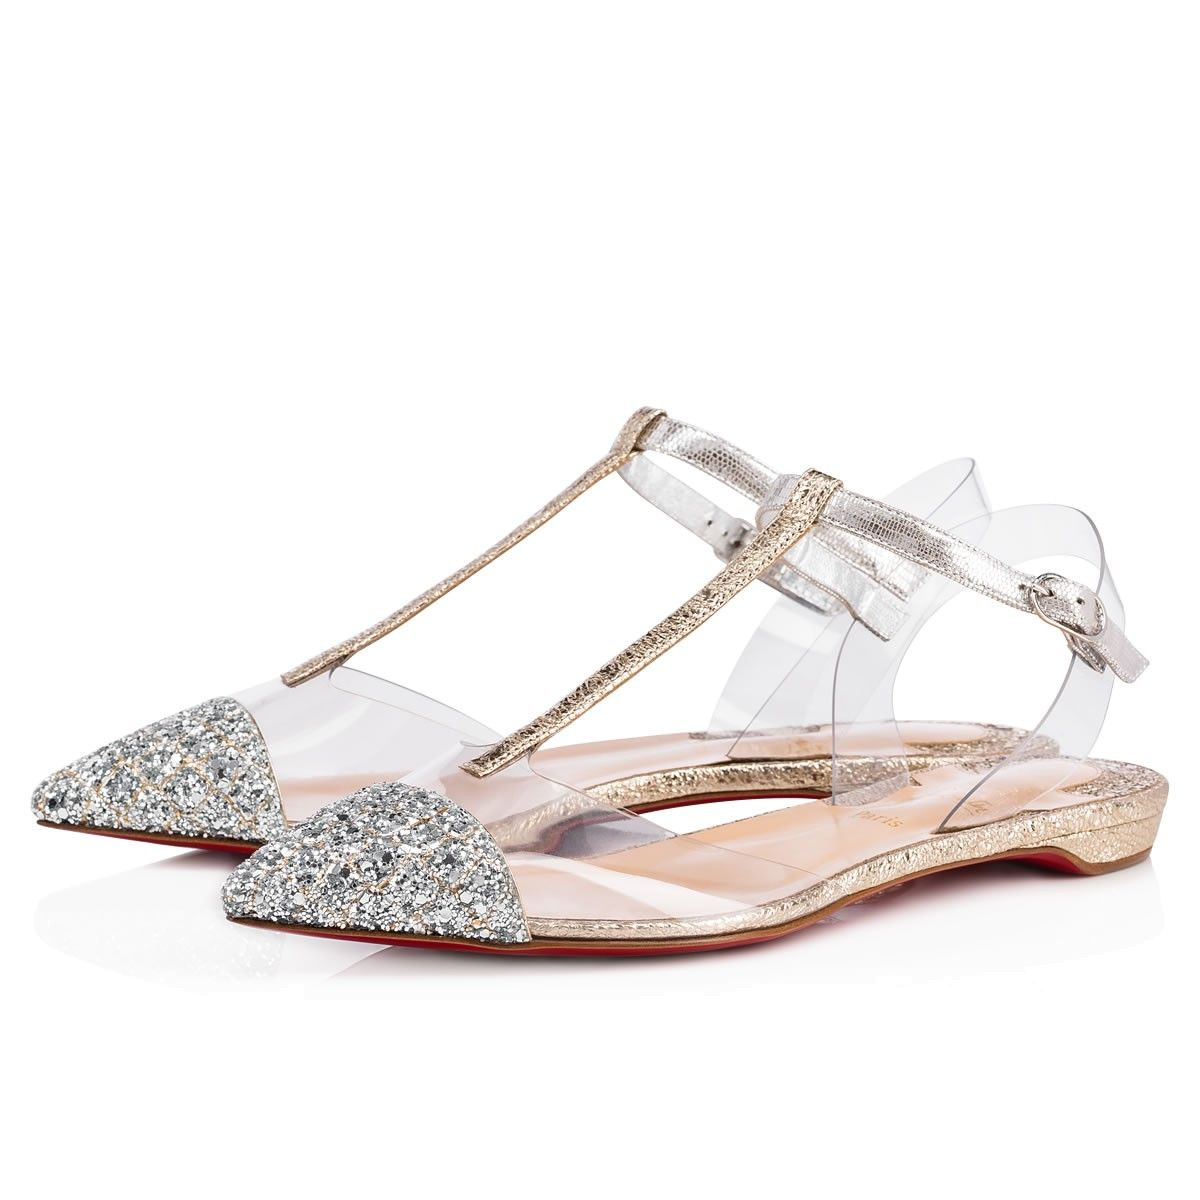 b6813905381 Shoes - Nosy Flat - Christian Louboutin | Special Day// | Silver ...